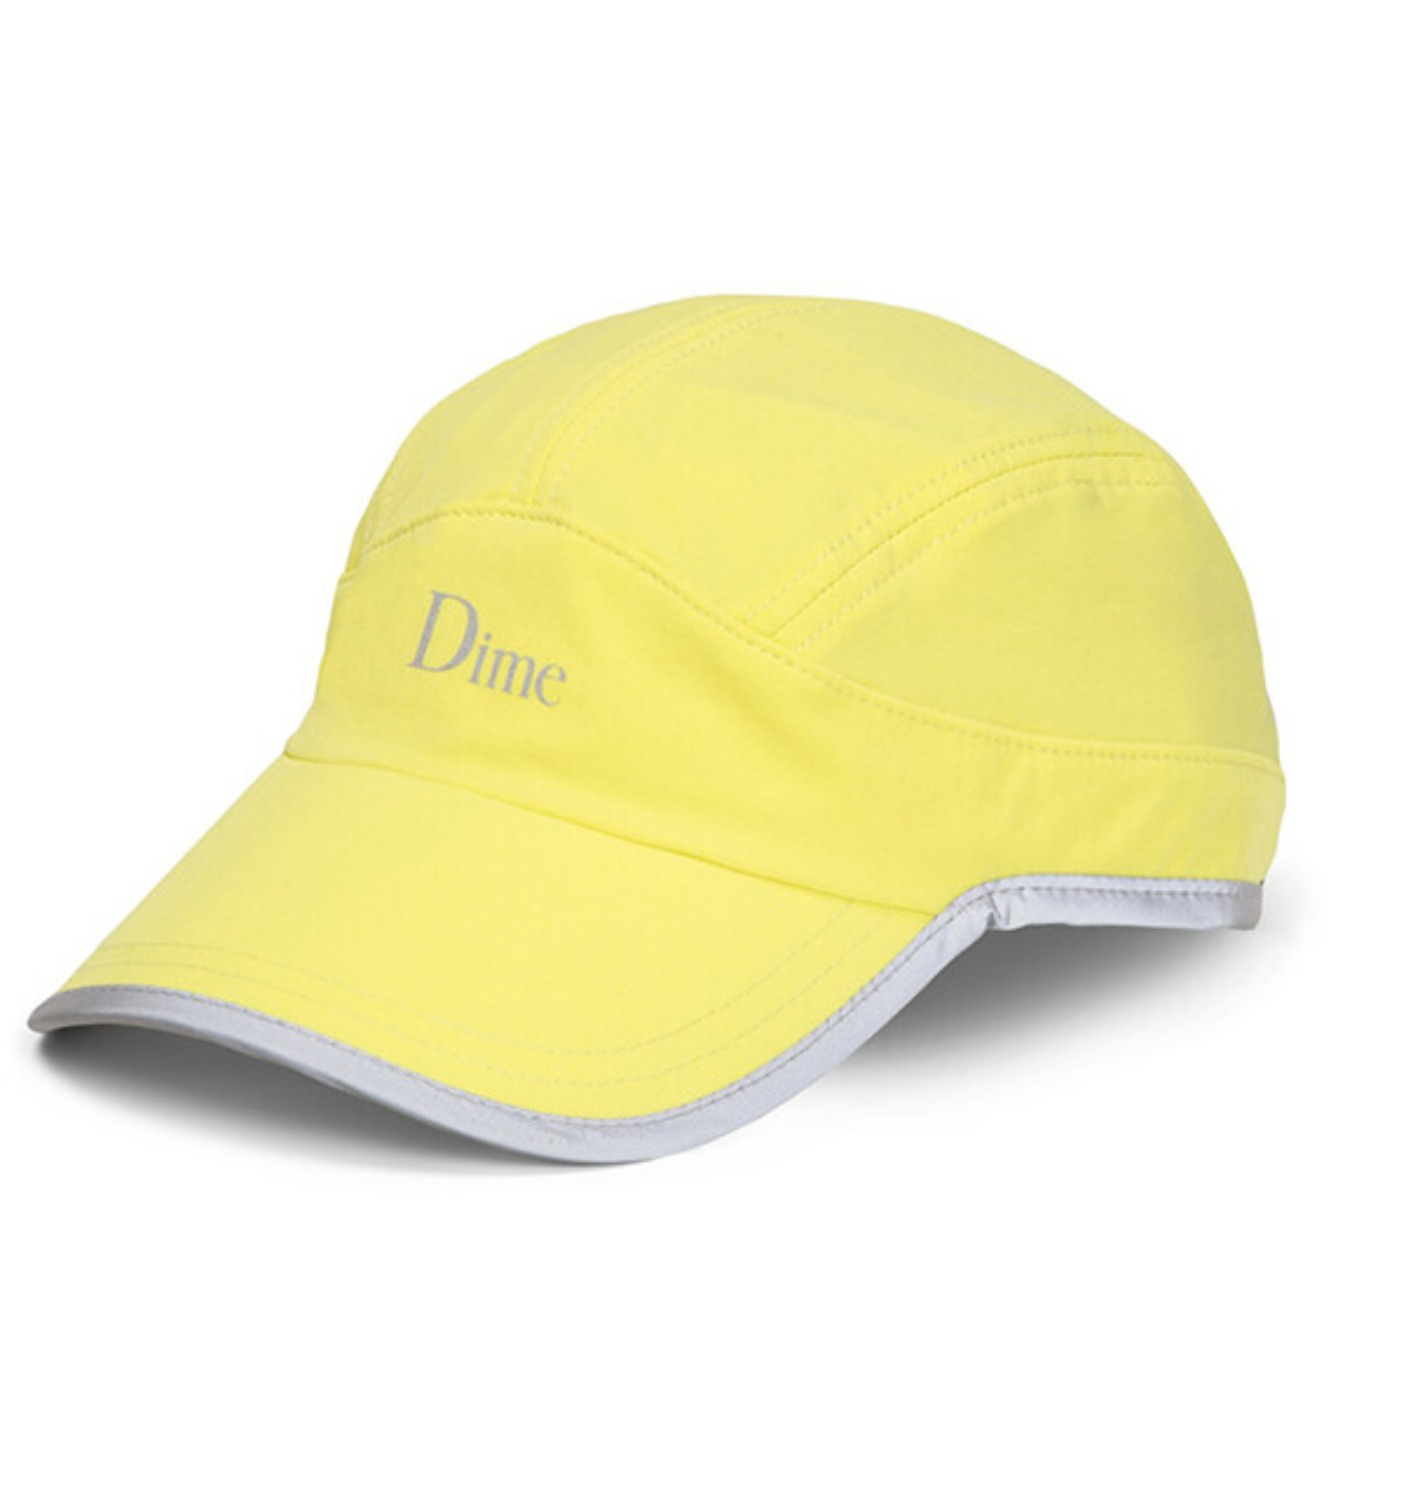 DIME CLASSIC LOGO SAFETY CAP NEON